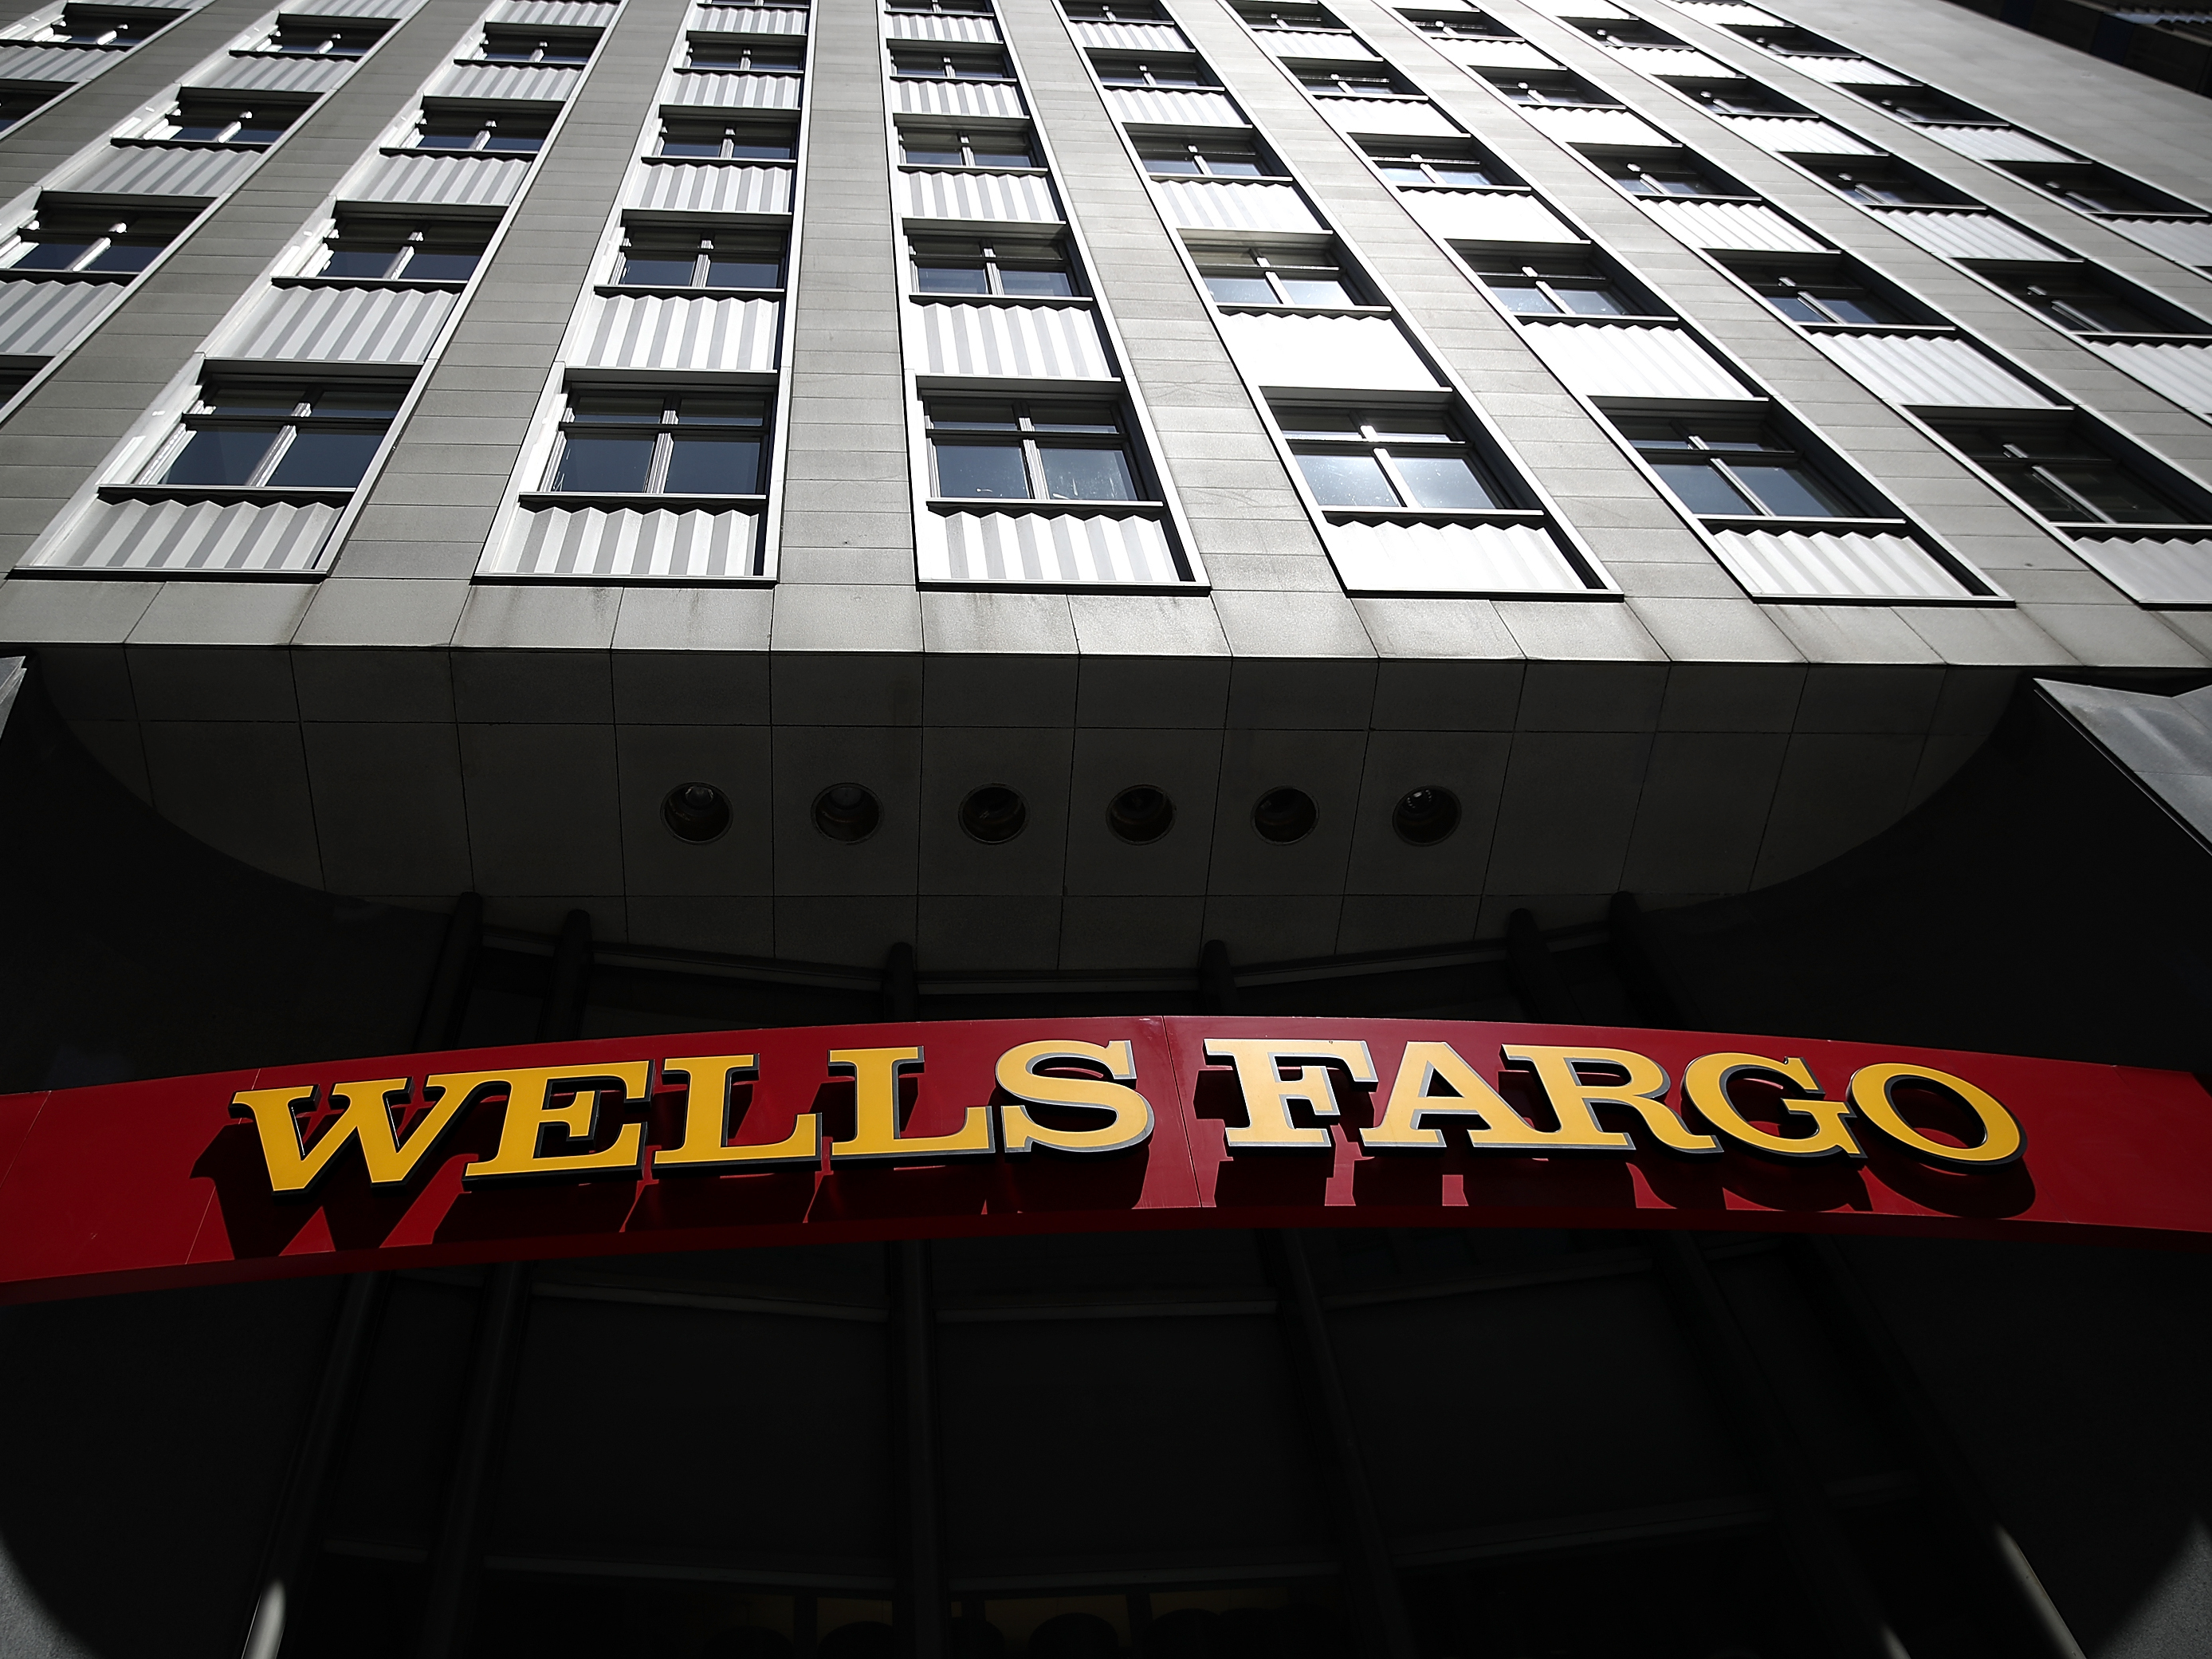 Wells Fargo Gets New York Subpoenas Over Auto Insurance Scandal